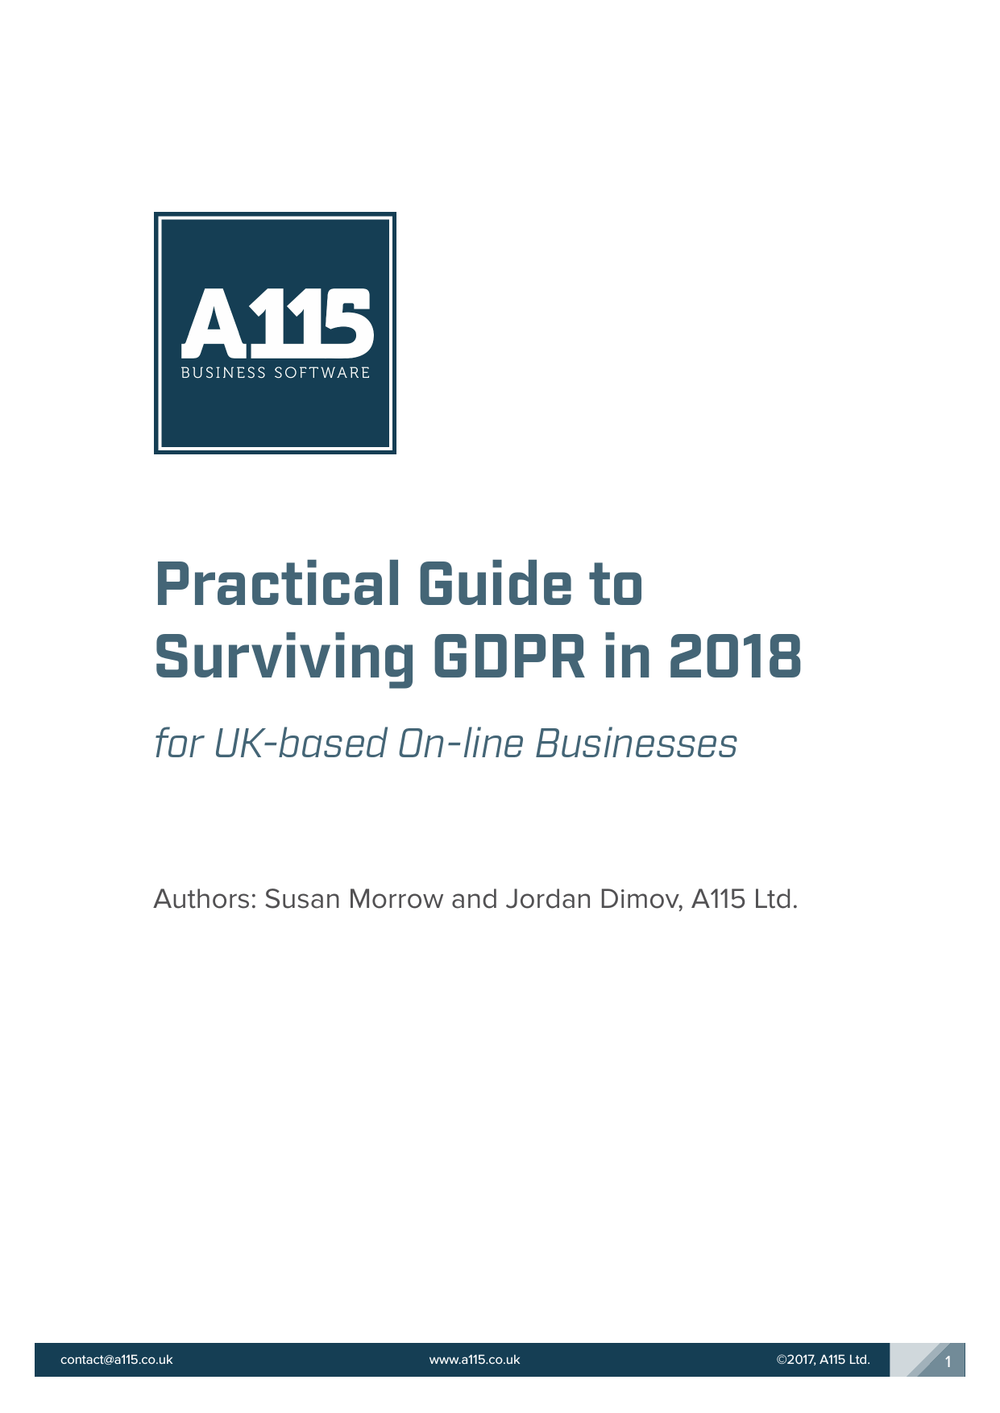 A115-GDPR-2018-UK-p1.png